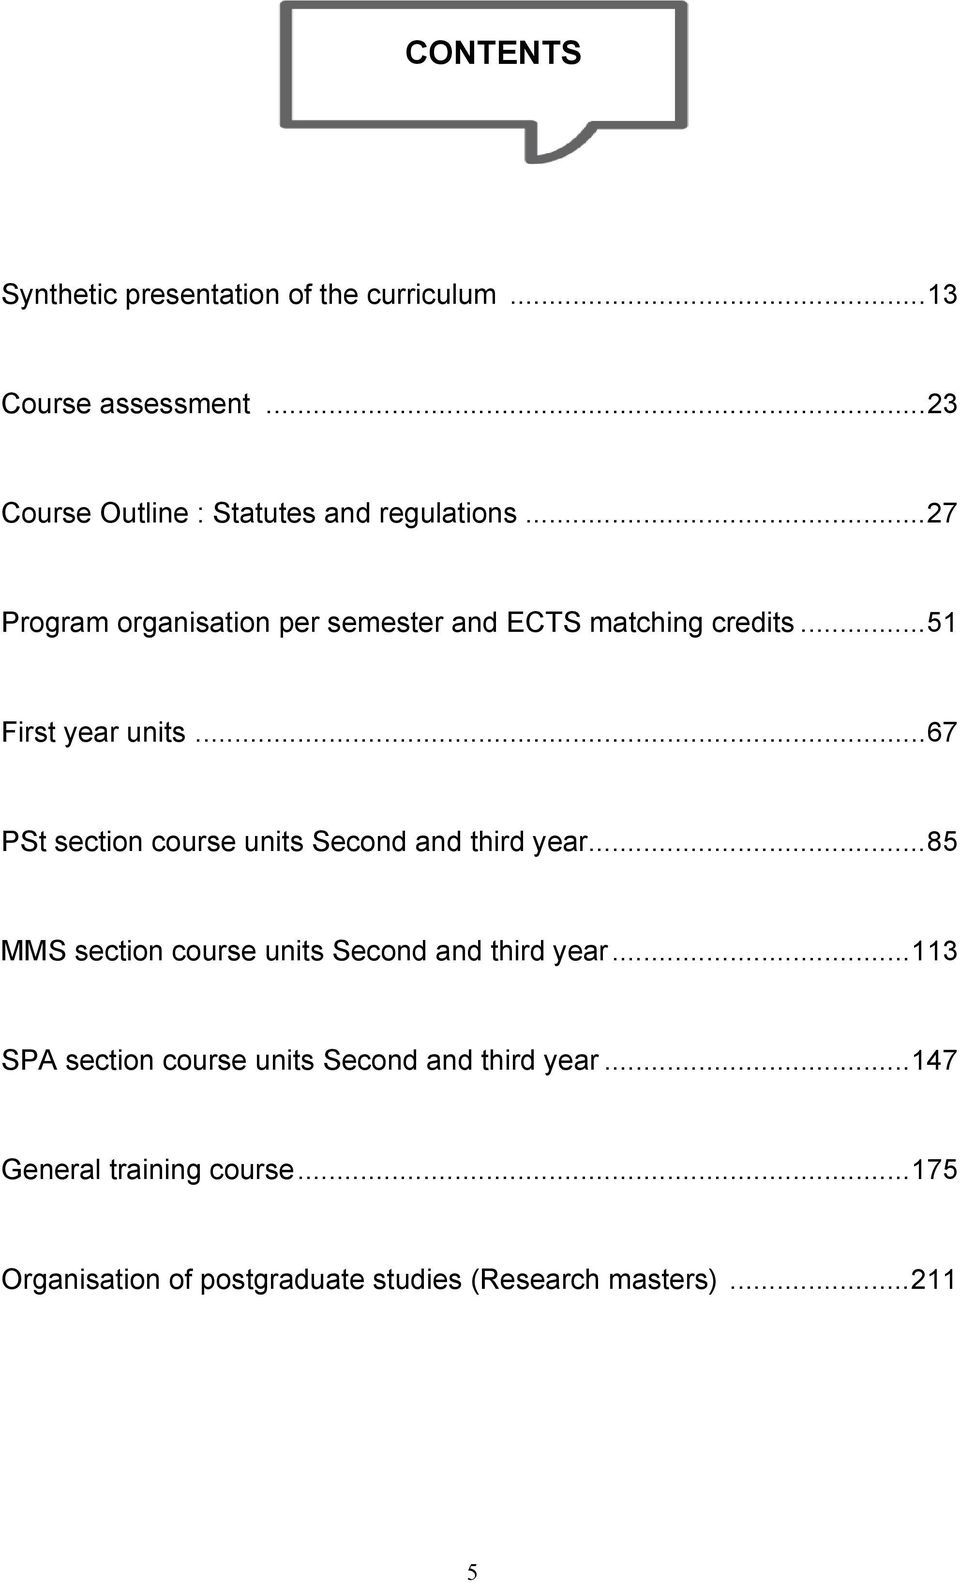 ..51 First year units...67 PSt section course units Second and tird year.